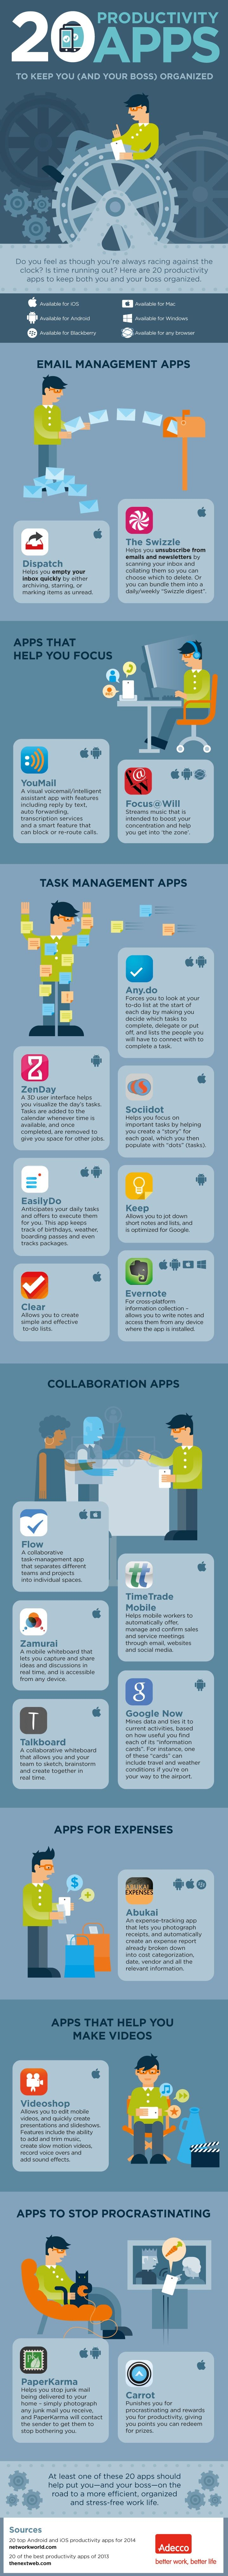 Need to stay organised? The solution is literally in your pocket -- your smartphone. Countless people (students, businesspeople, creatives, etc.) use mobile productivity apps like Evernote, Easily.Do, and Any.DO to stay on top of things. Which mobile app helps you organise your life? Here are some more tips to help you be the most organised…